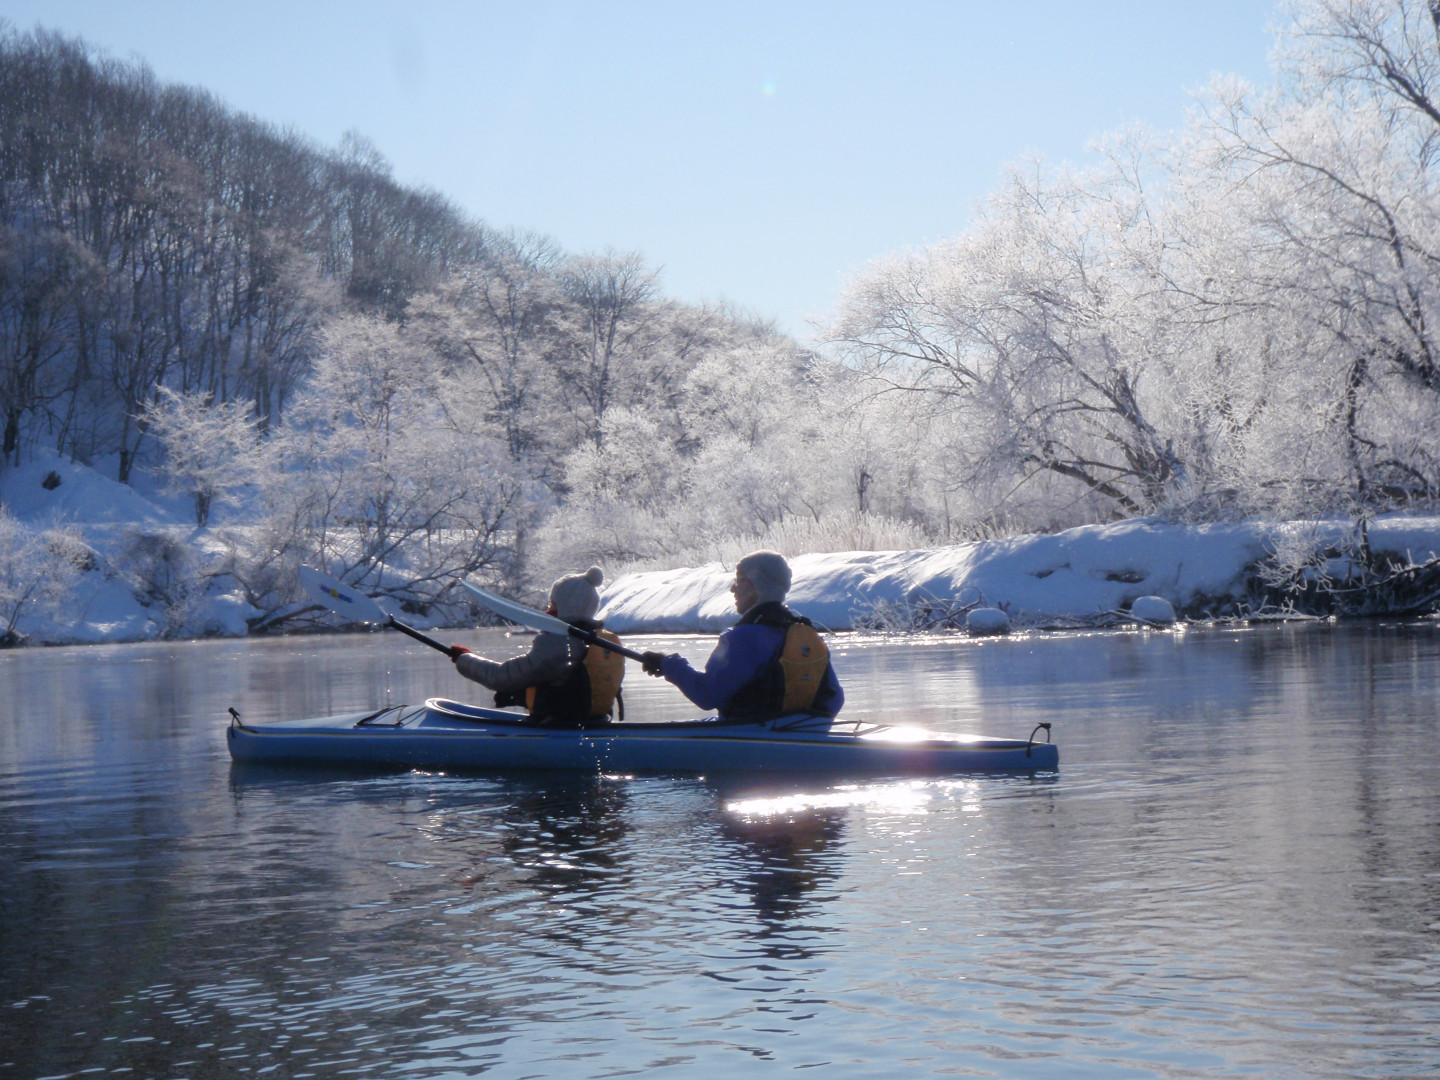 Winter nature experiences include winter canoeing on Kushiro River, and snowshoeing on the frozen Kushiro Wetlands.<br>A quintessential way to enjoy the great northern lands!